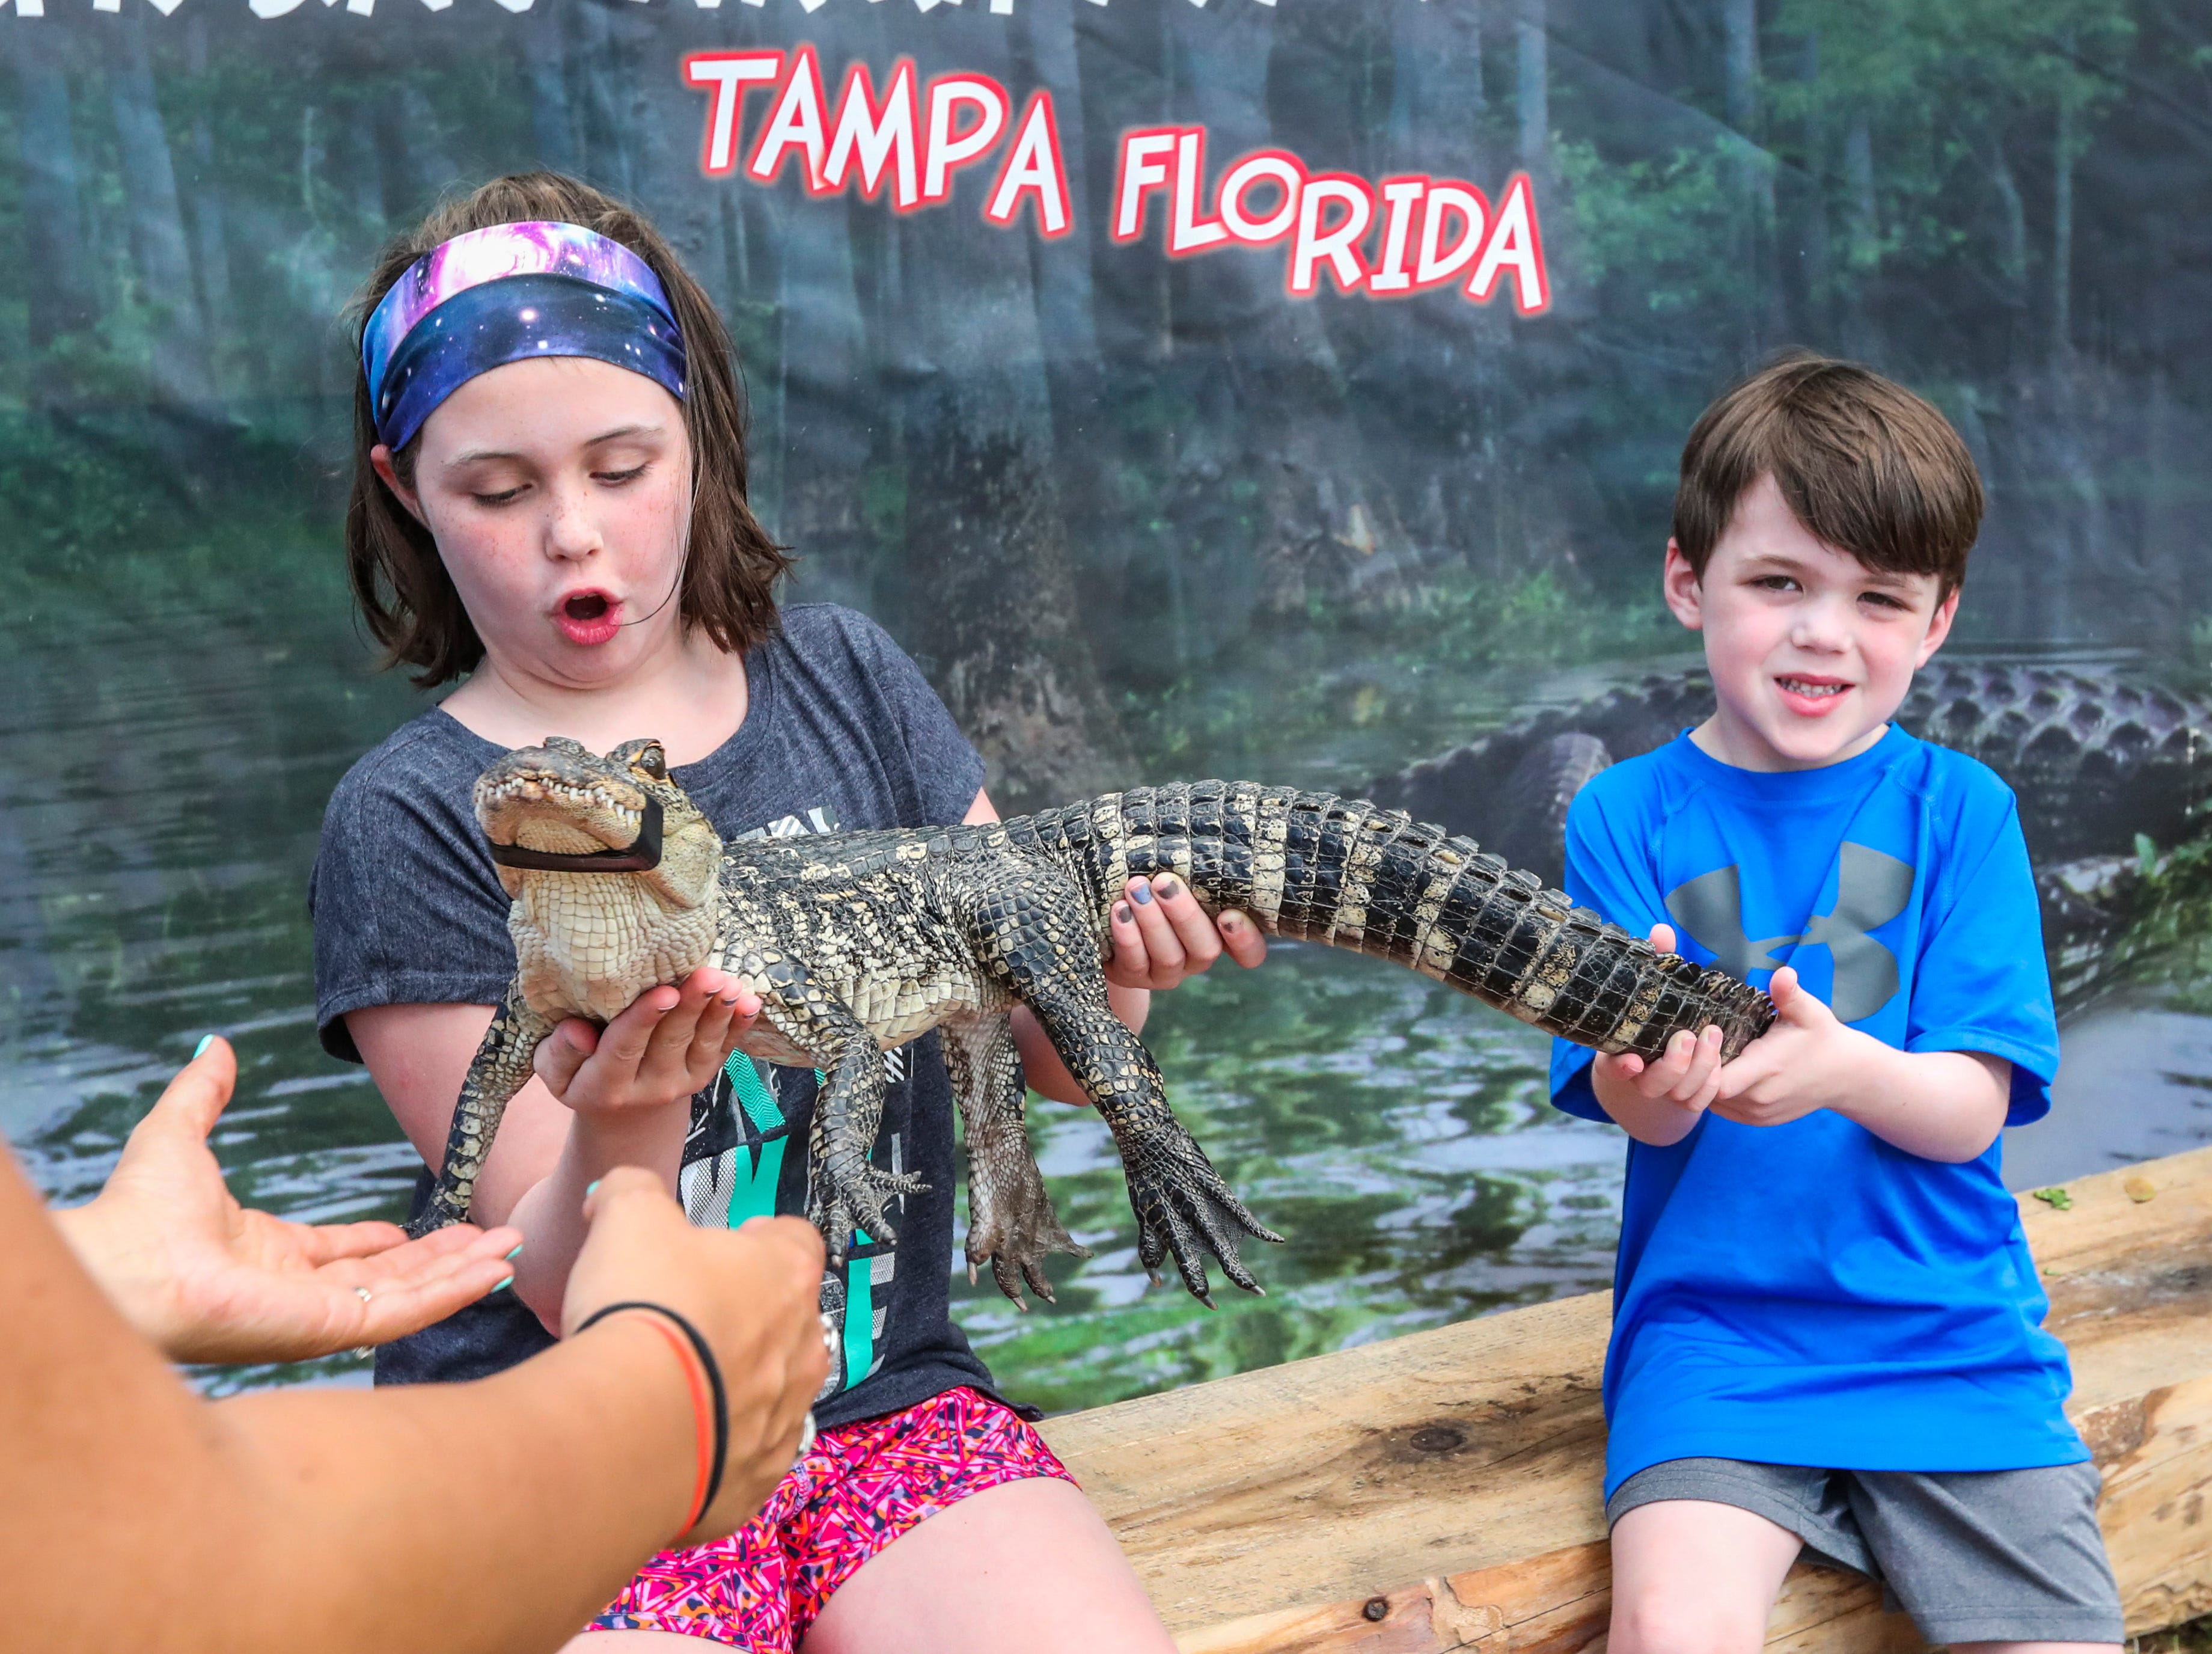 "Patrick Walsh, 4, tried to be brave as he and his sister, Erin, 8, held an alligator. ""I'll just hold the tail"", Patrick said. They were down from Cape Cod to visit their grandparents where were down snowbirding for the month. Cape Coral Florida's, official City bird was celebrated during the 17th Annual Burrowing Owl Festival at Rotary Park on Saturday, February 23, 2019. It was a fun day for the whole family, filled with entertaining and educational programs, hands-on activities for children, live animals, guided nature walks, butterfly house tours, bus tours to active owl burrows."